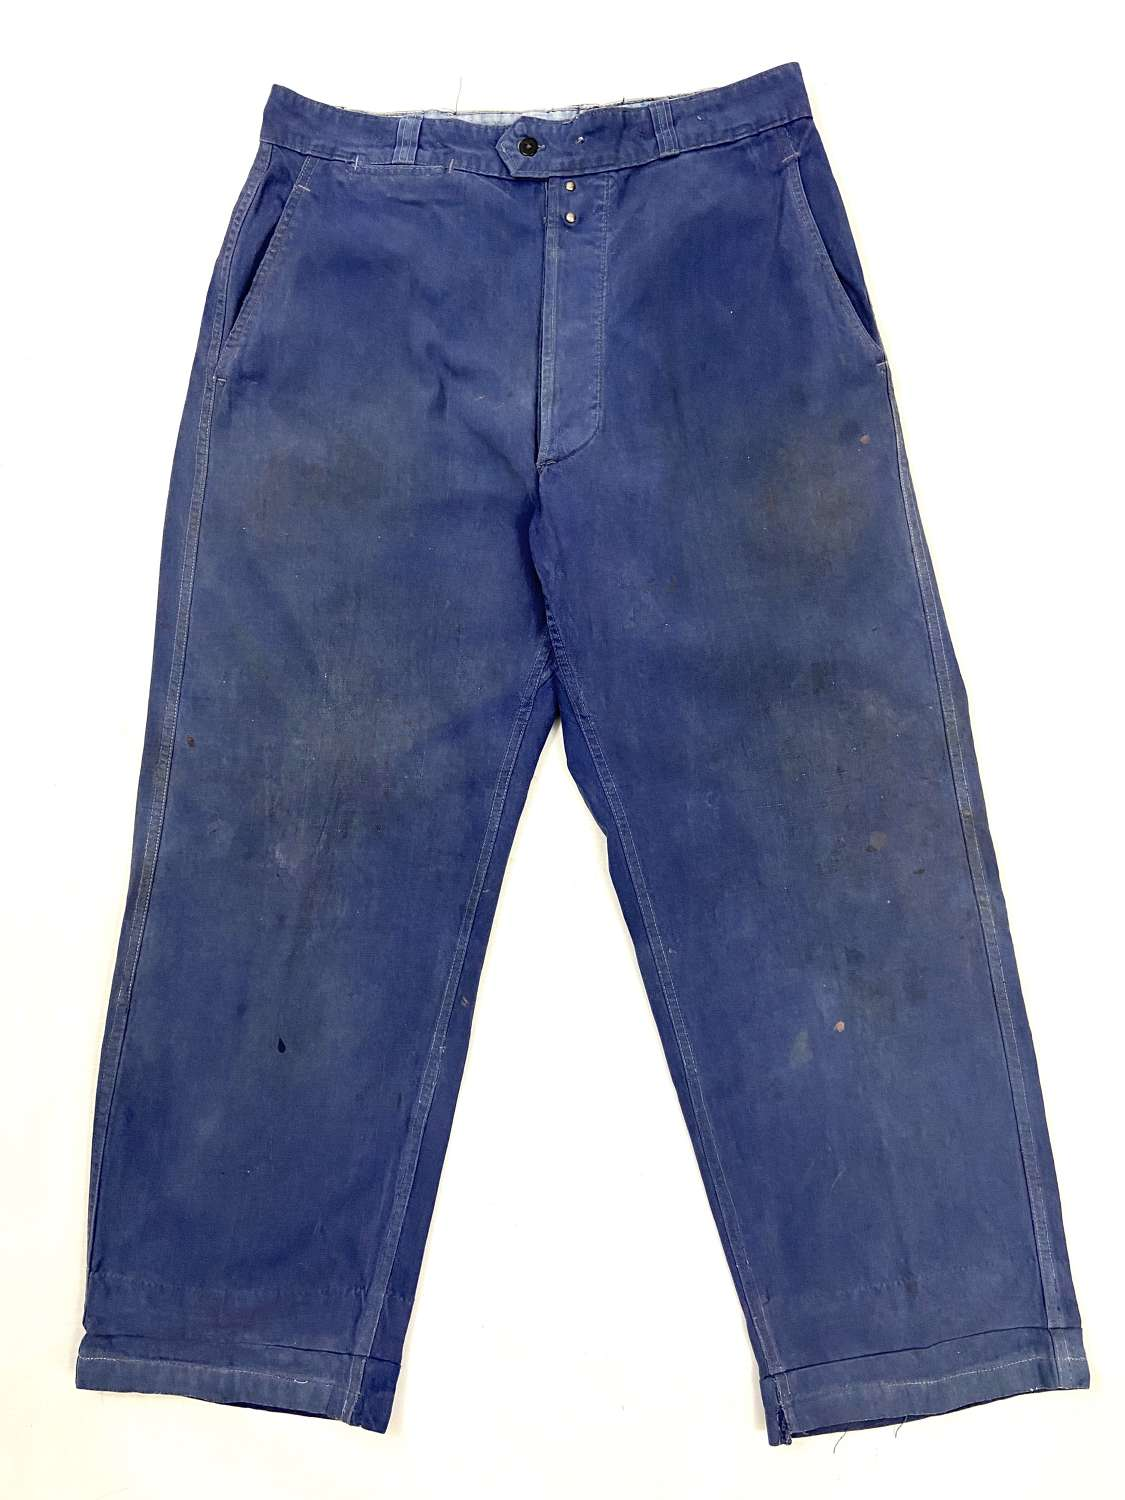 Original 1950s Blue French Workwear Trousers by 'Extra Savo'